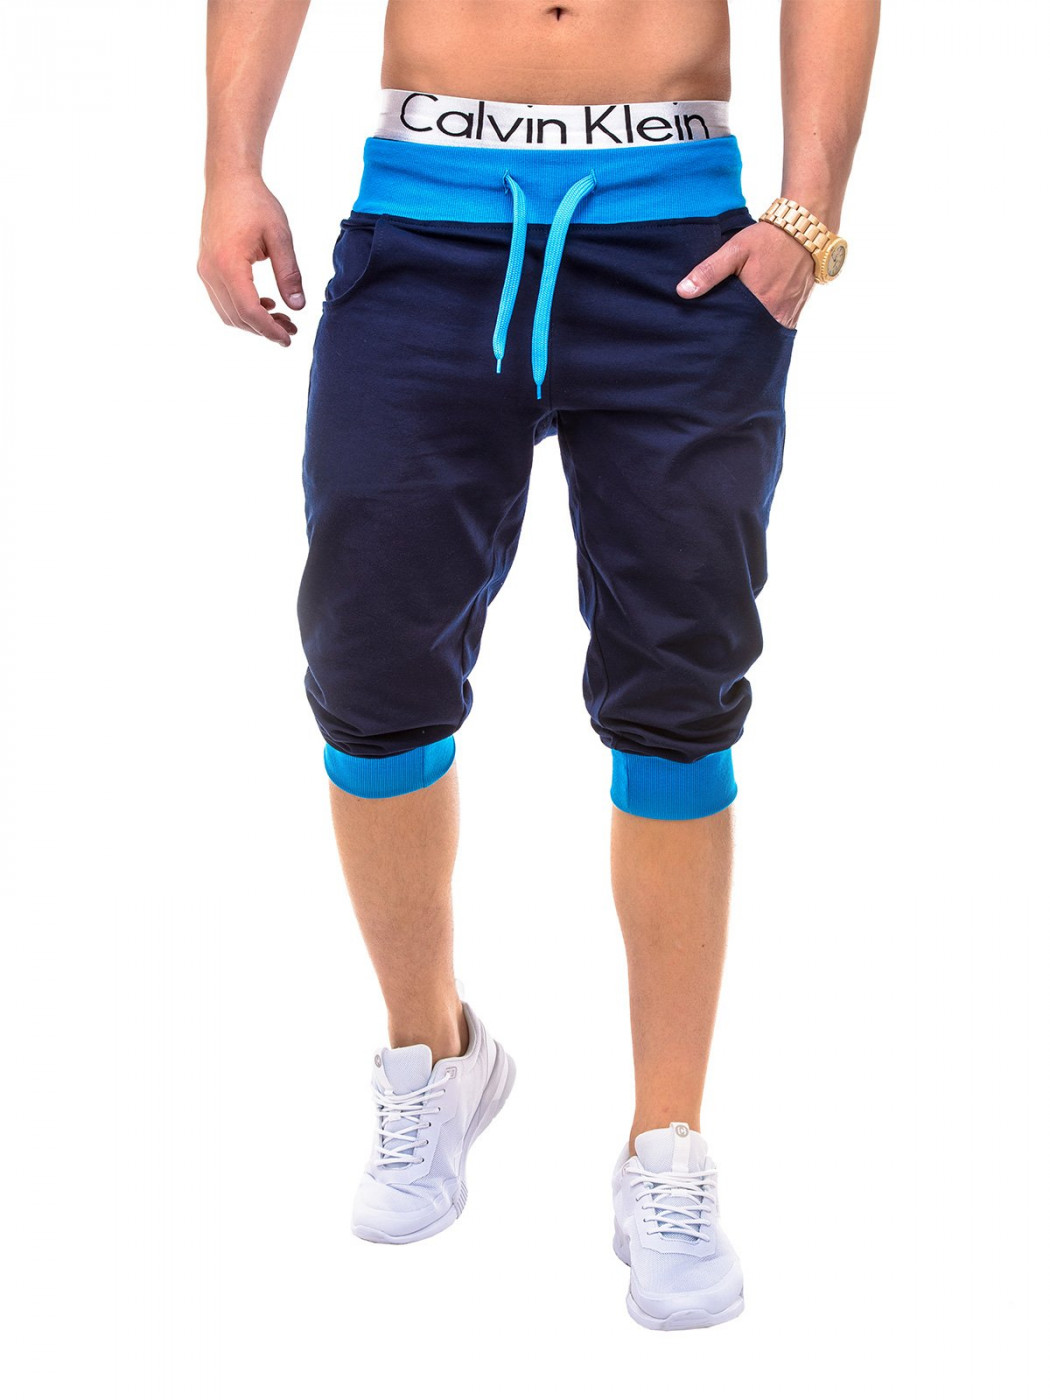 Men's shorts Ombre Multicolored